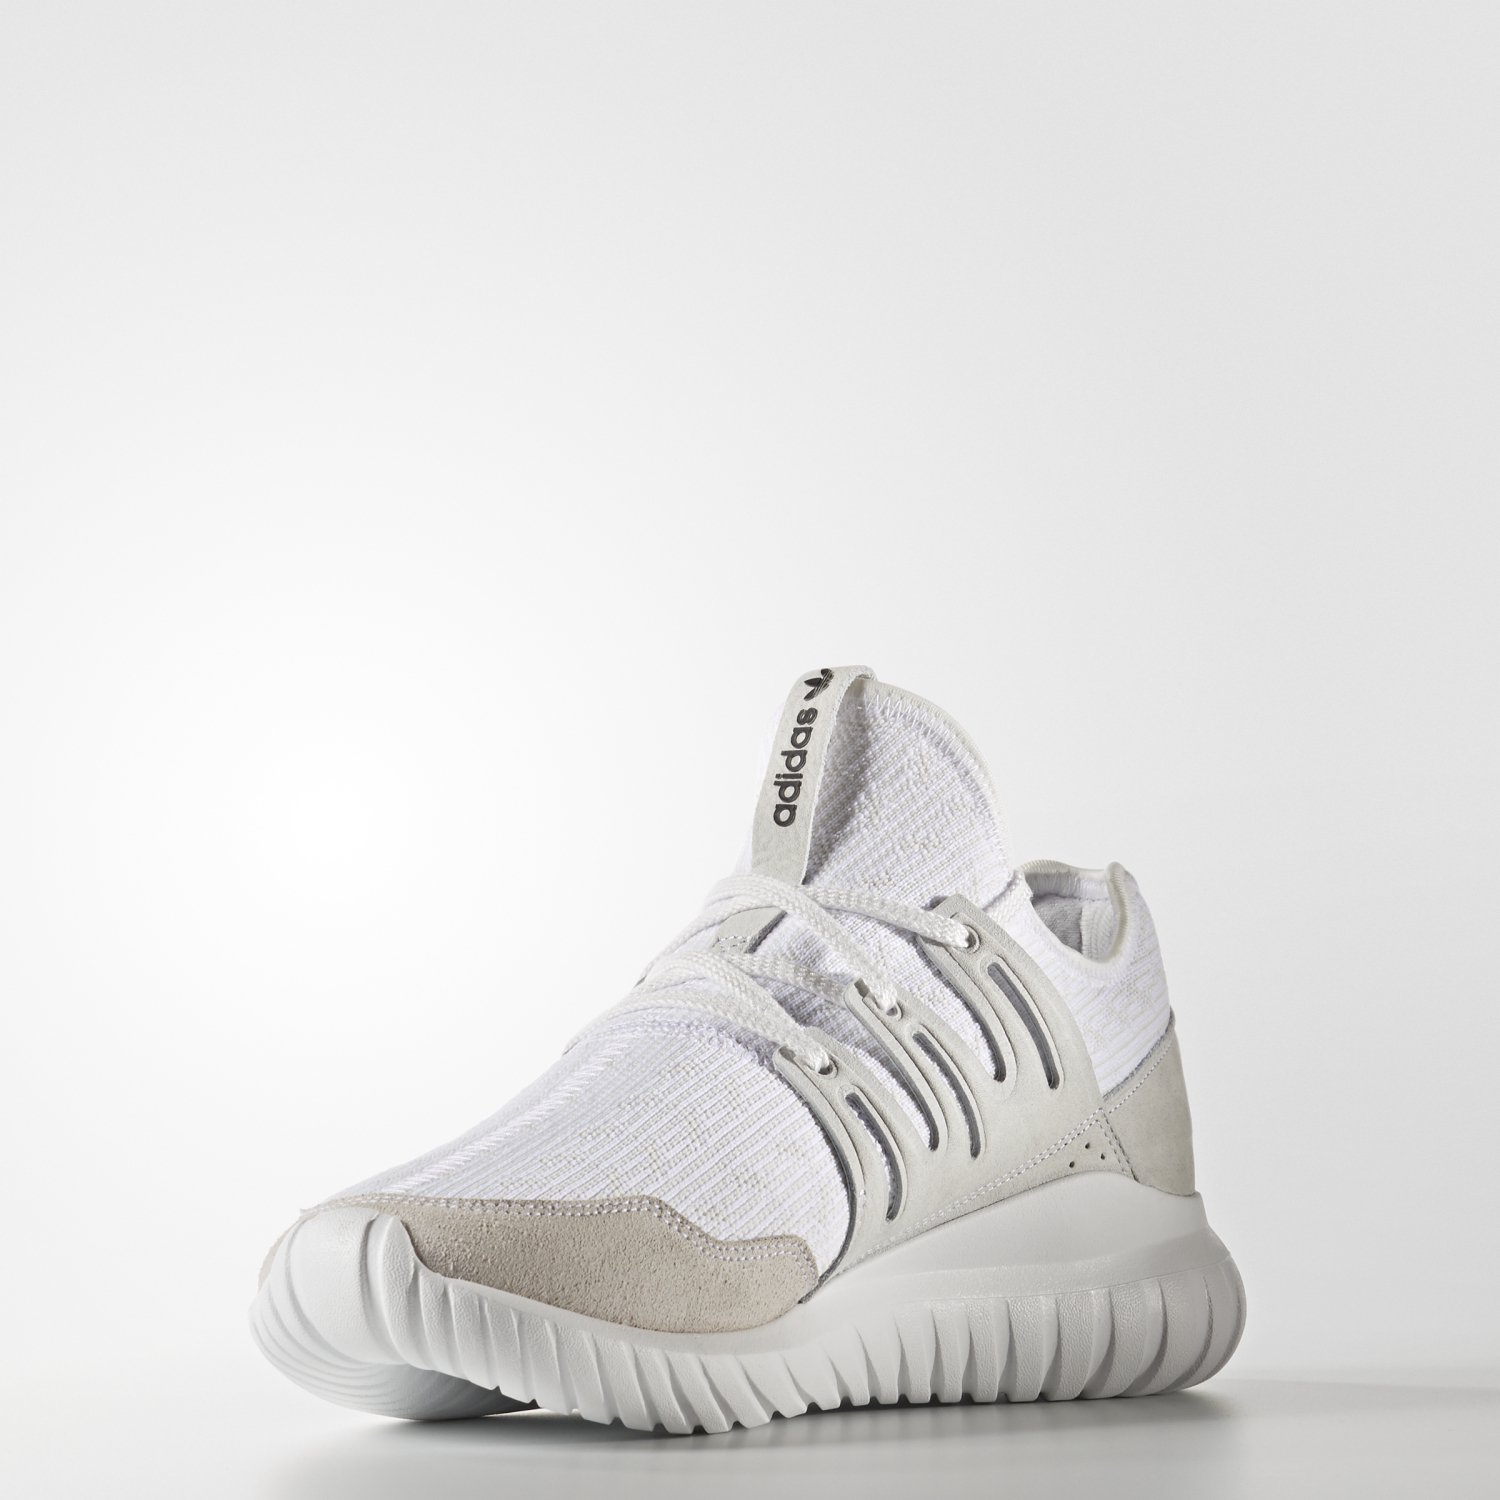 adidas-originals-tubular-series-release-20161110